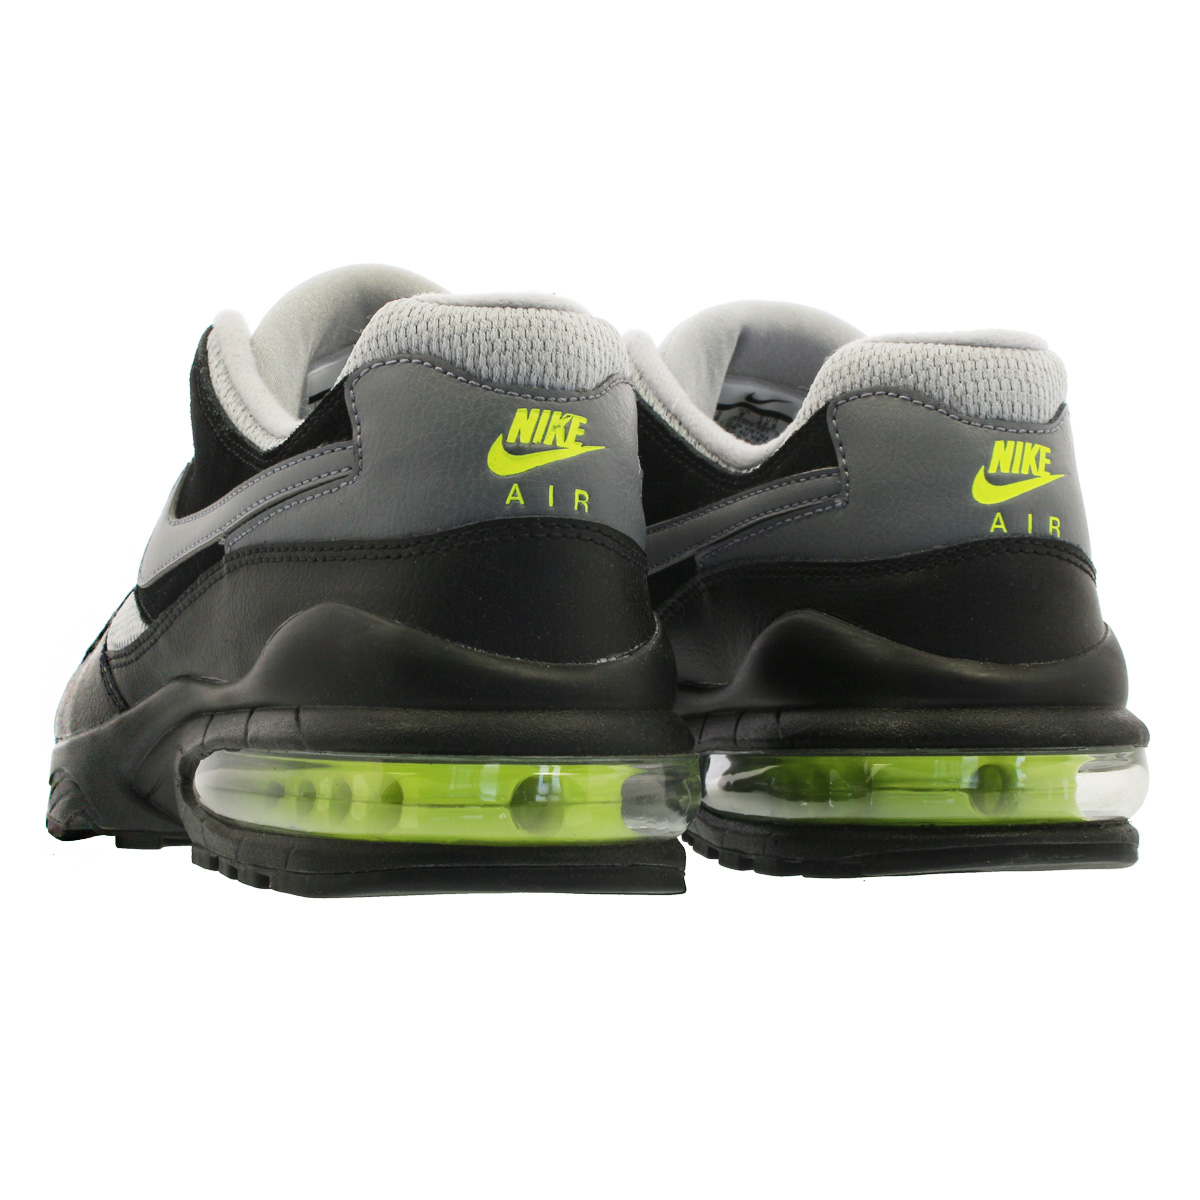 f021638ba2 SELECT SHOP LOWTEX: NIKE AIR MAX 94 Kie Ney AMAX 94 WOLF GREY/COOL ...